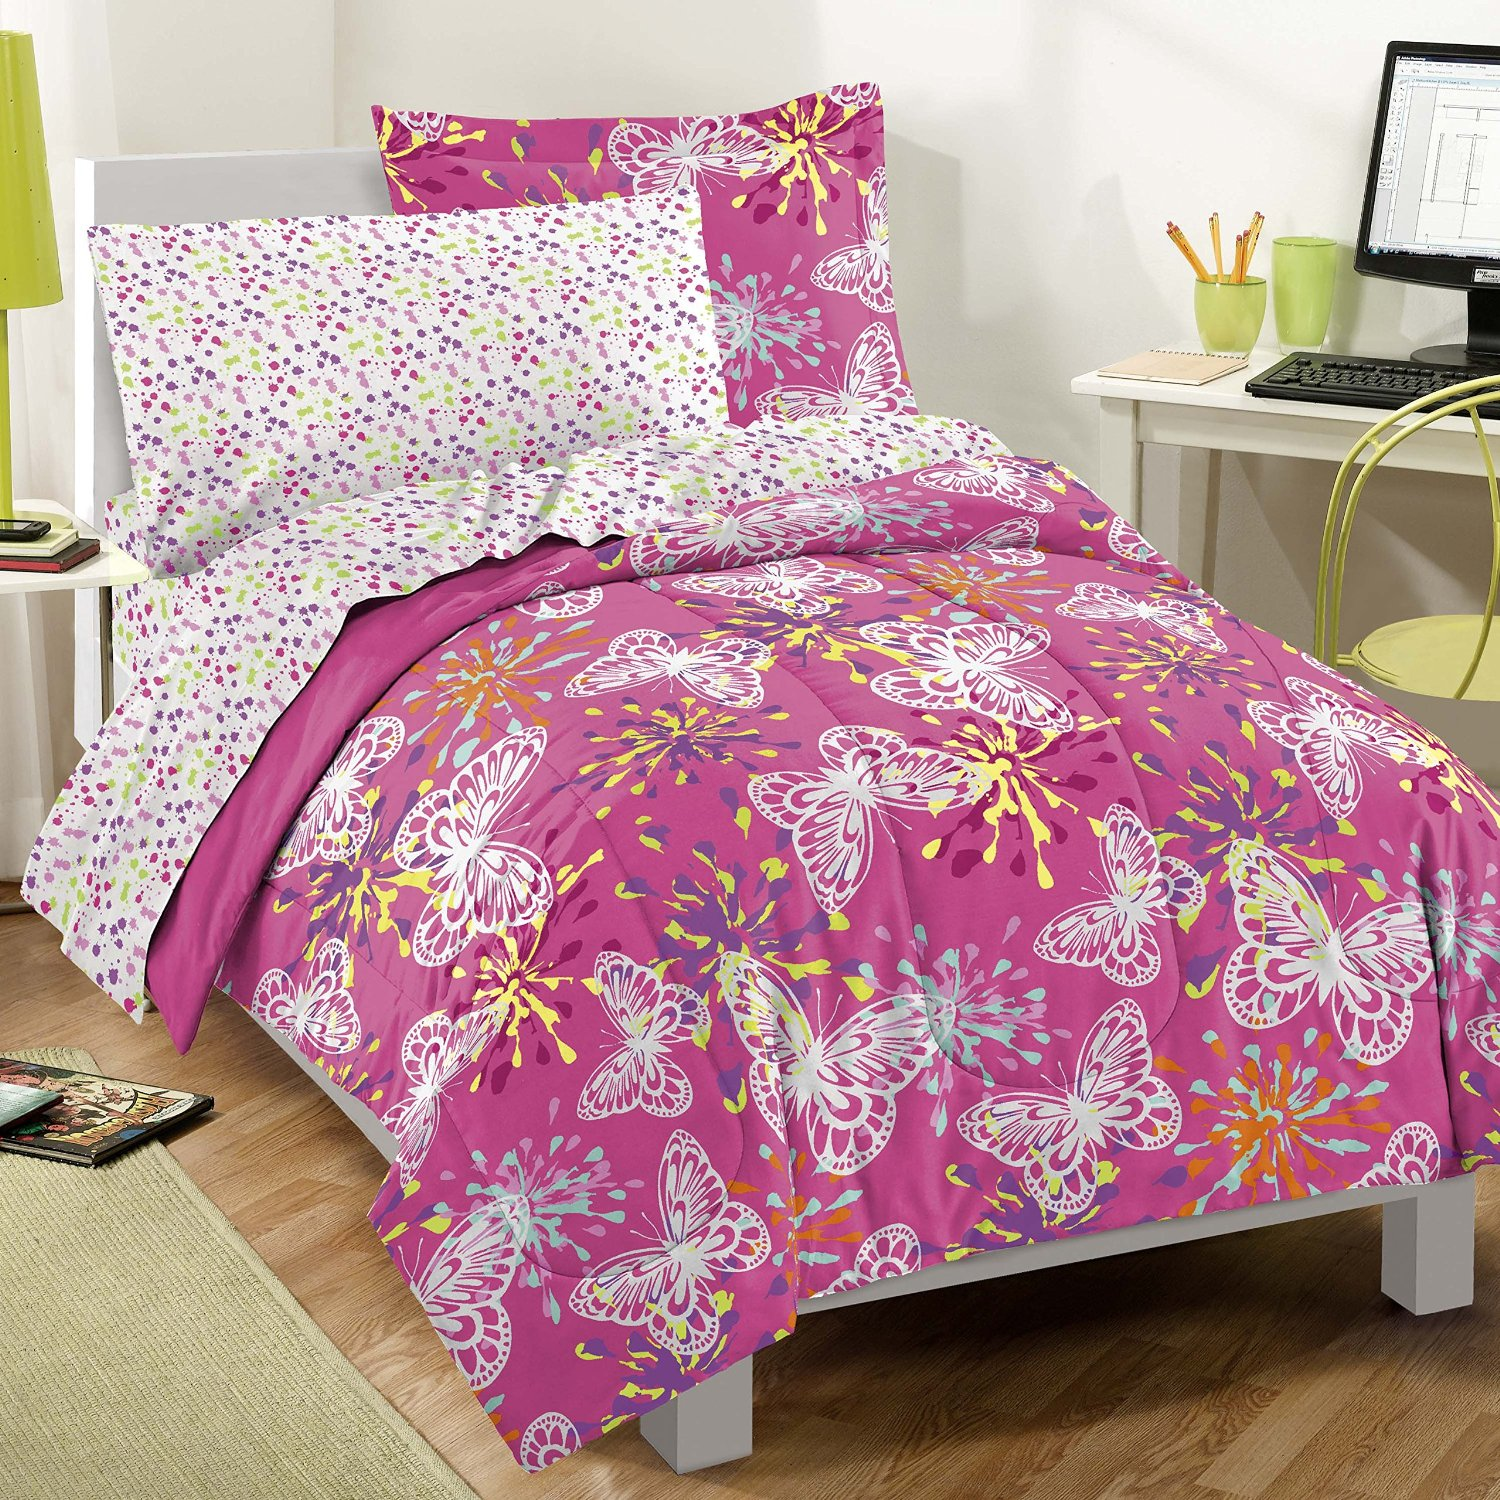 boxer butterfly getimage joe set microfiber comforter striped shop your shld url